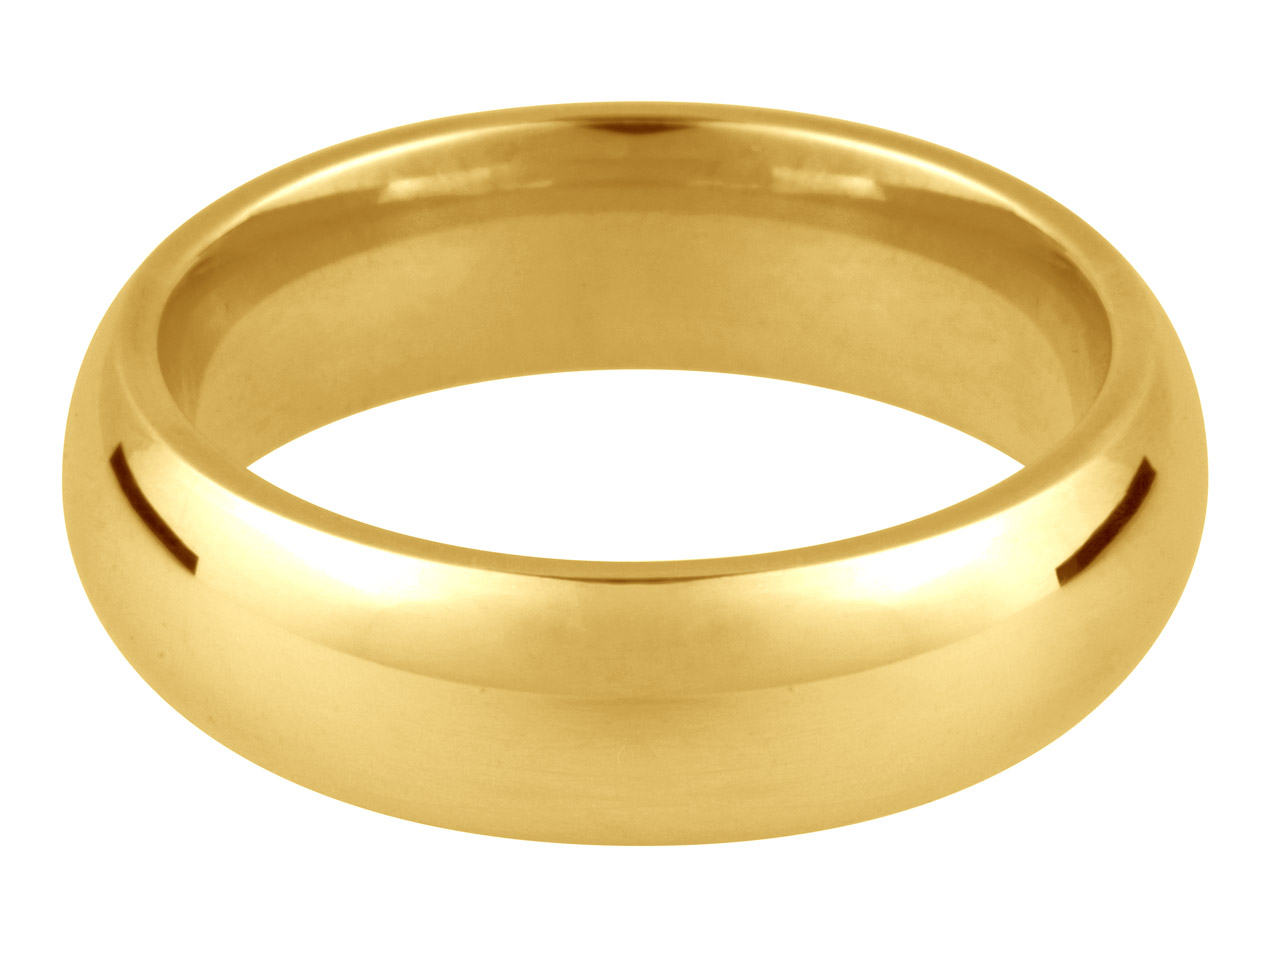 9ct Yellow Court Wedding Ring 4.0mm N 3.1gms Light Weight Hallmarked    Wall Thickness 1.48mm